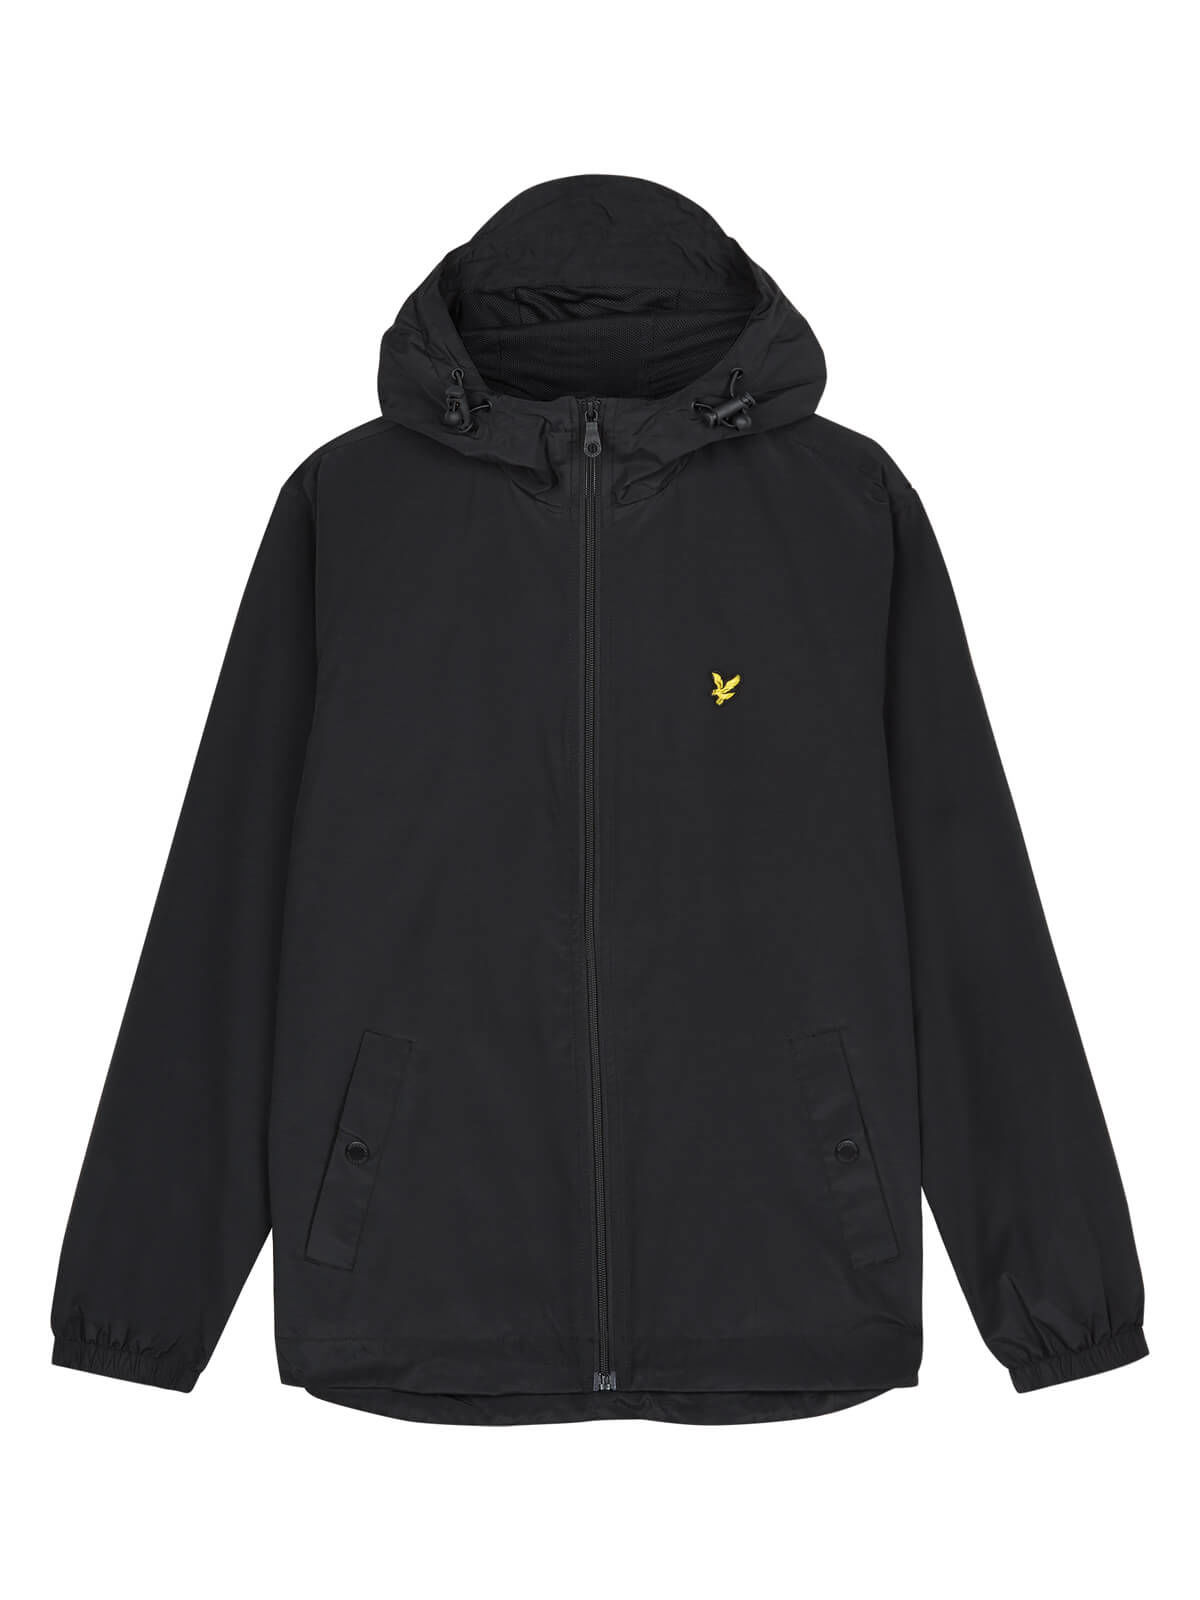 Lyle and Scott True Black Zip Through Hooded Jacket